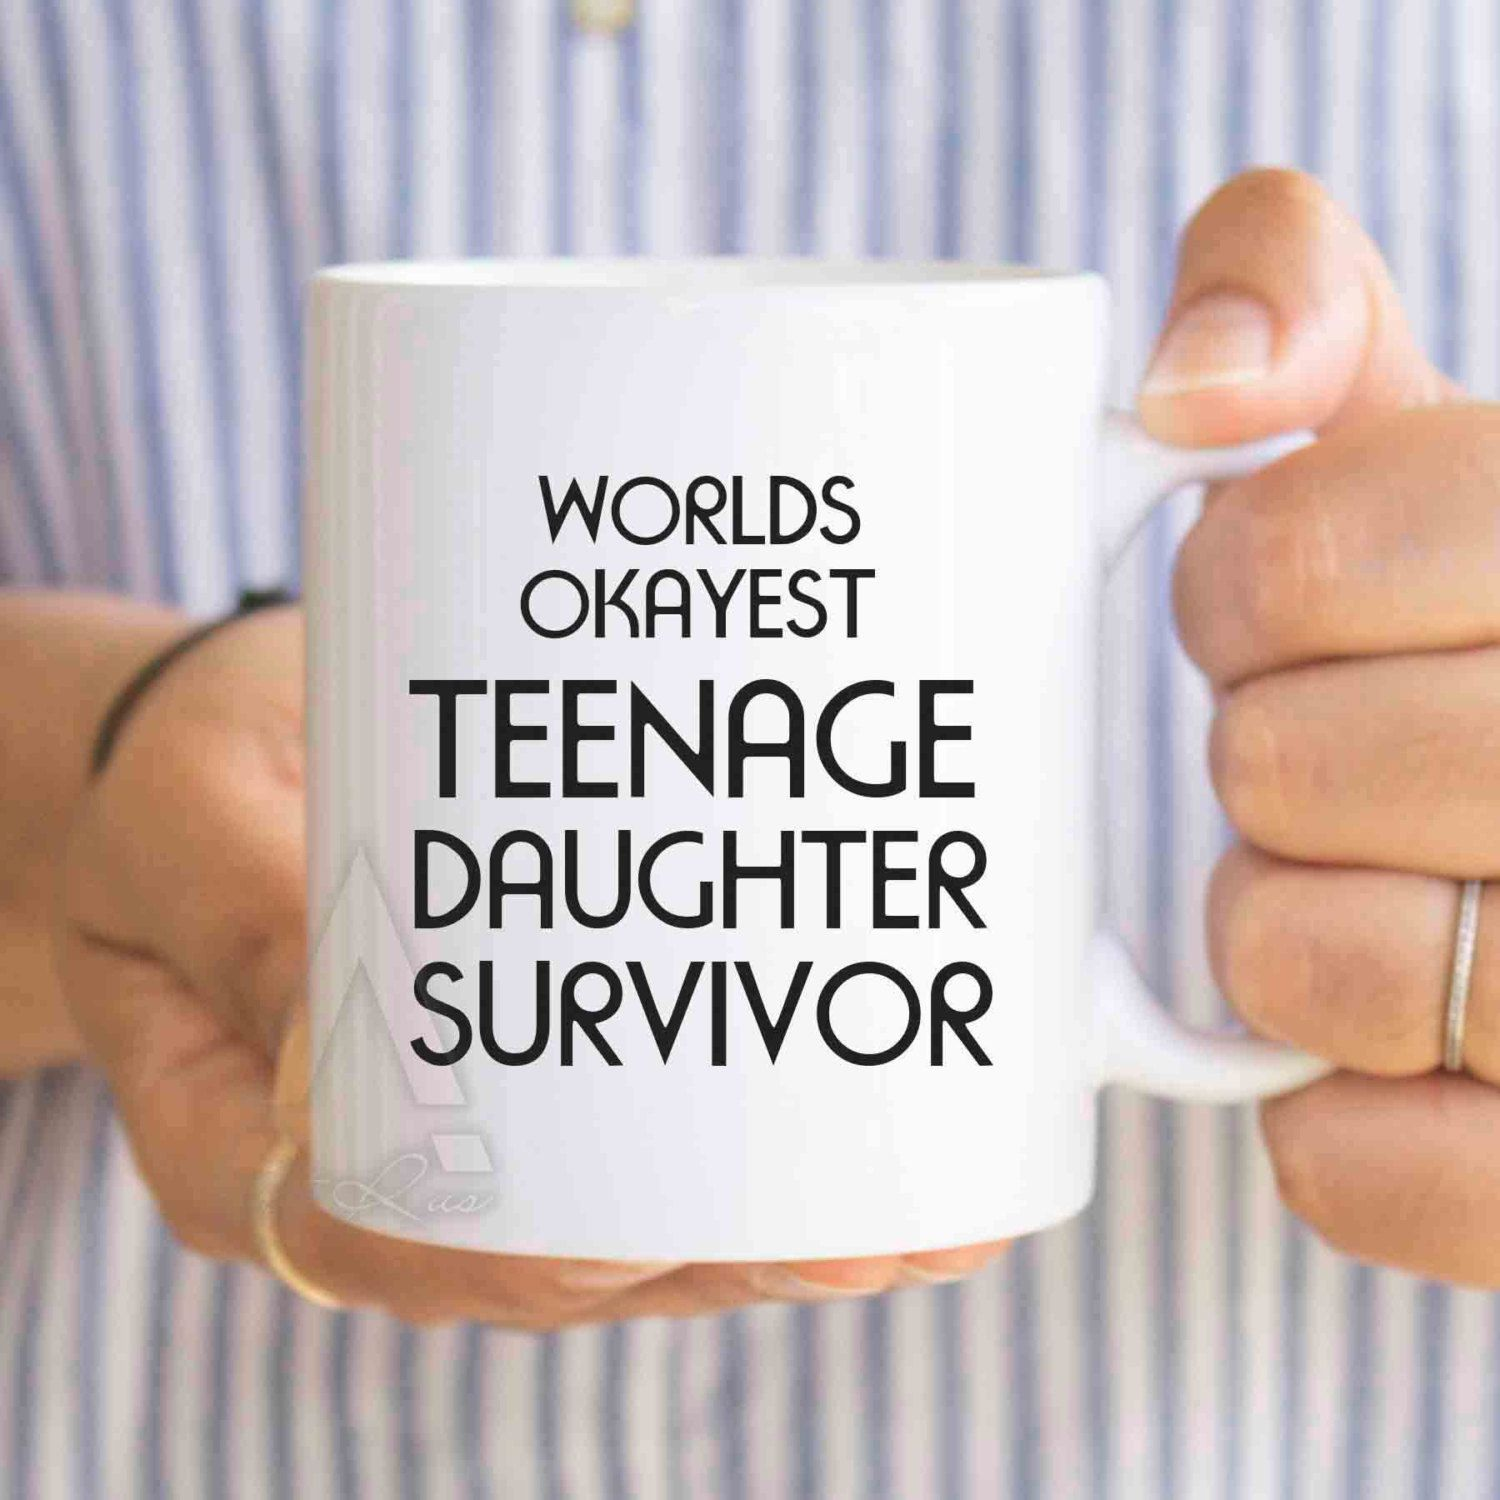 Fathers Day Gift From Daughter Quot Worlds Okayest Teenage Daughter Survivor Quot Funny Coffee Mug Father Mug Gifts Mother S Day Mugs Therapist Gifts Mugs